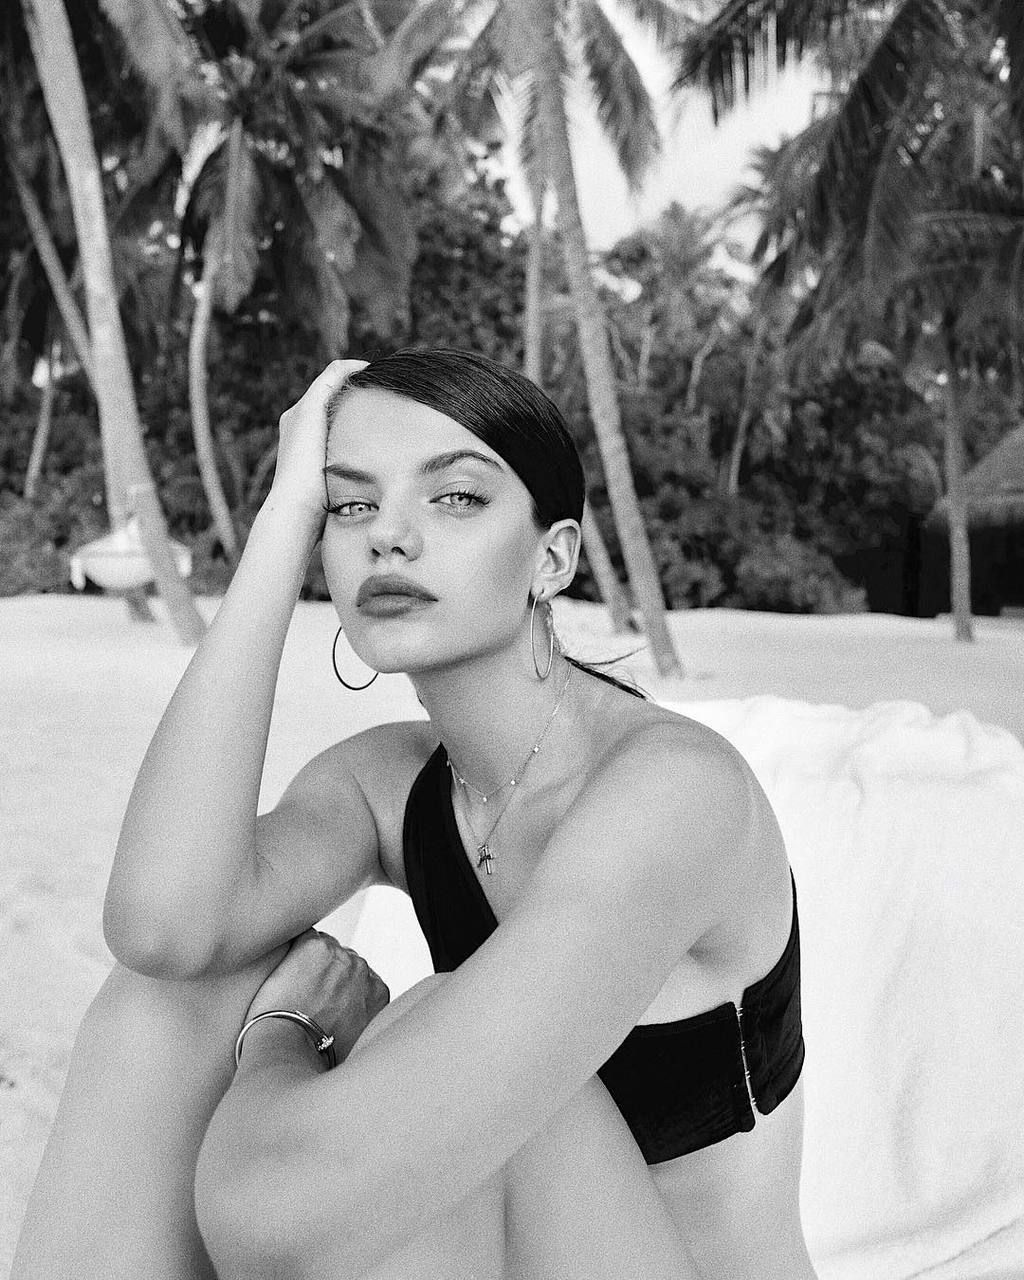 Discovered By Thais Find Images And Videos About Girl Model And Sonia Ben Ammar On We H Black And White Aesthetic Black And White Photography Black And White